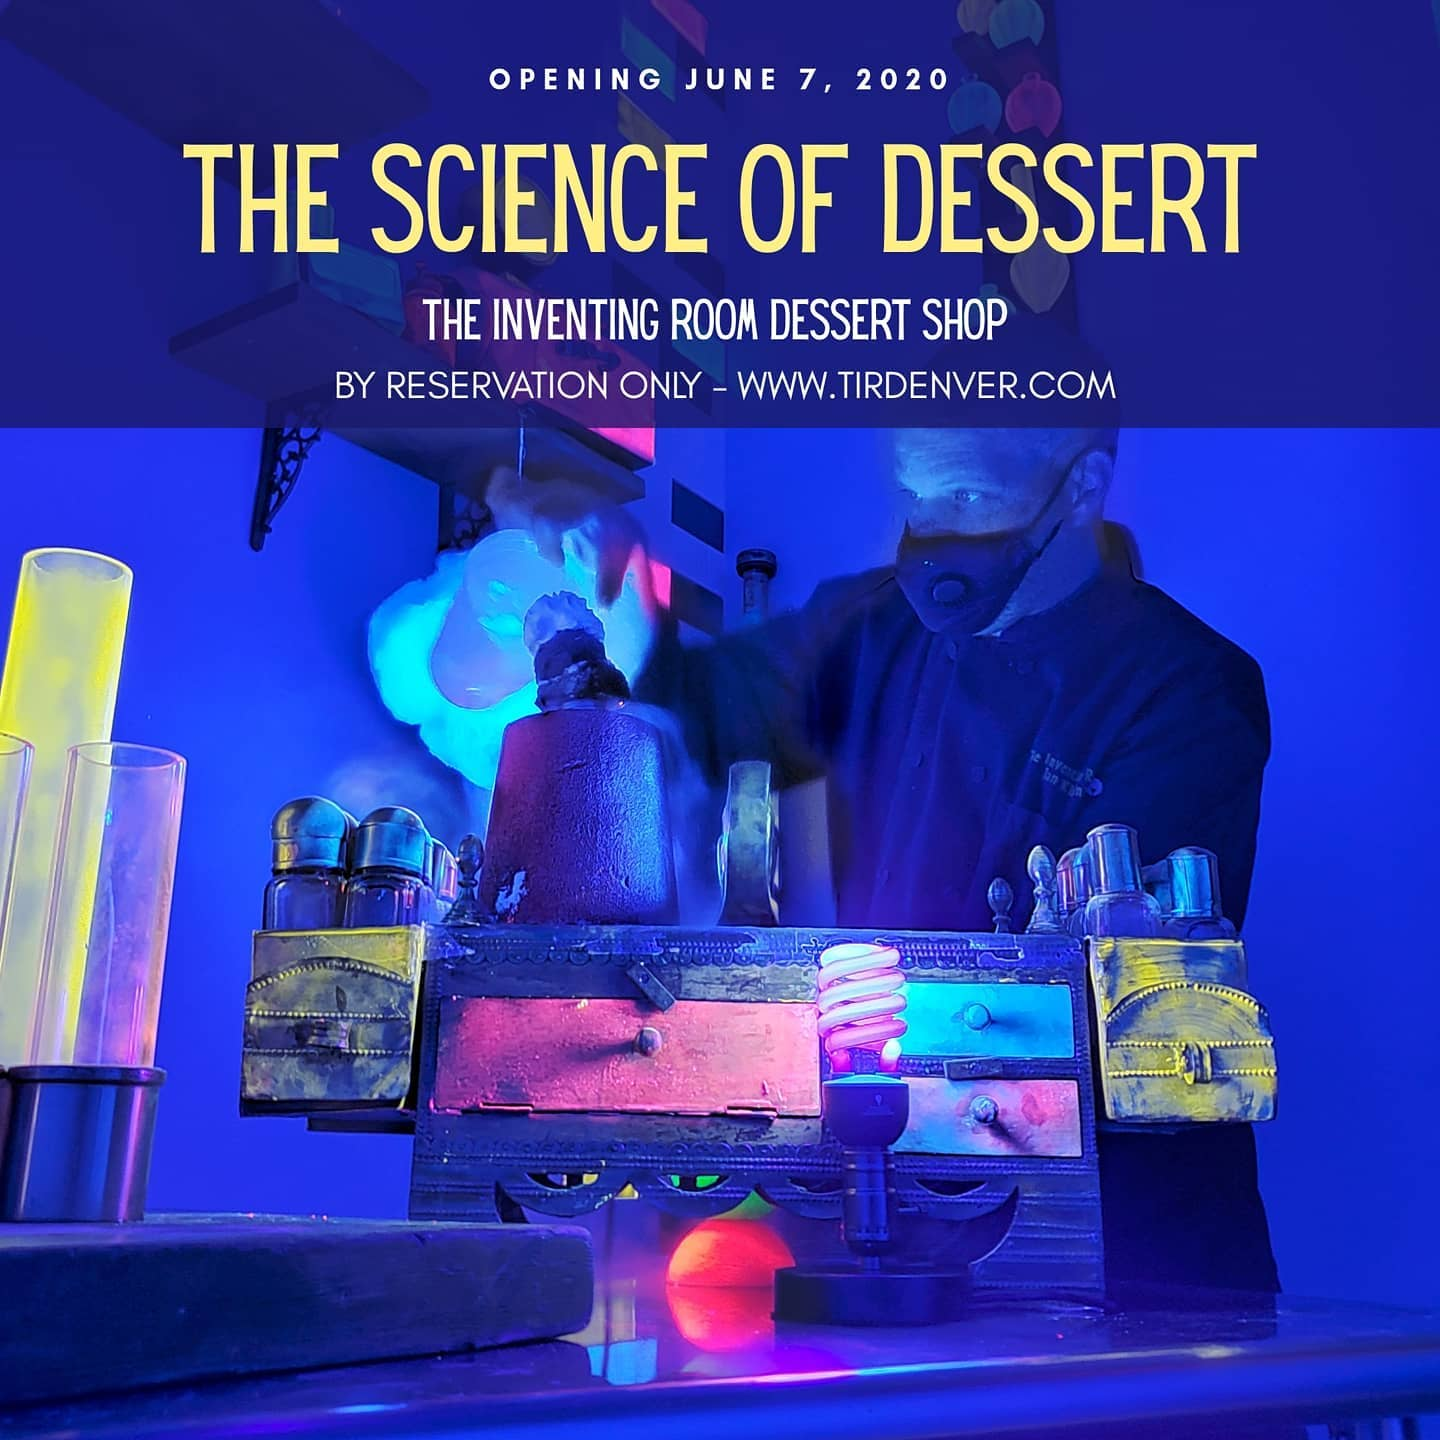 The Science of Dessert presented by The Inventing Room Dessert Shop